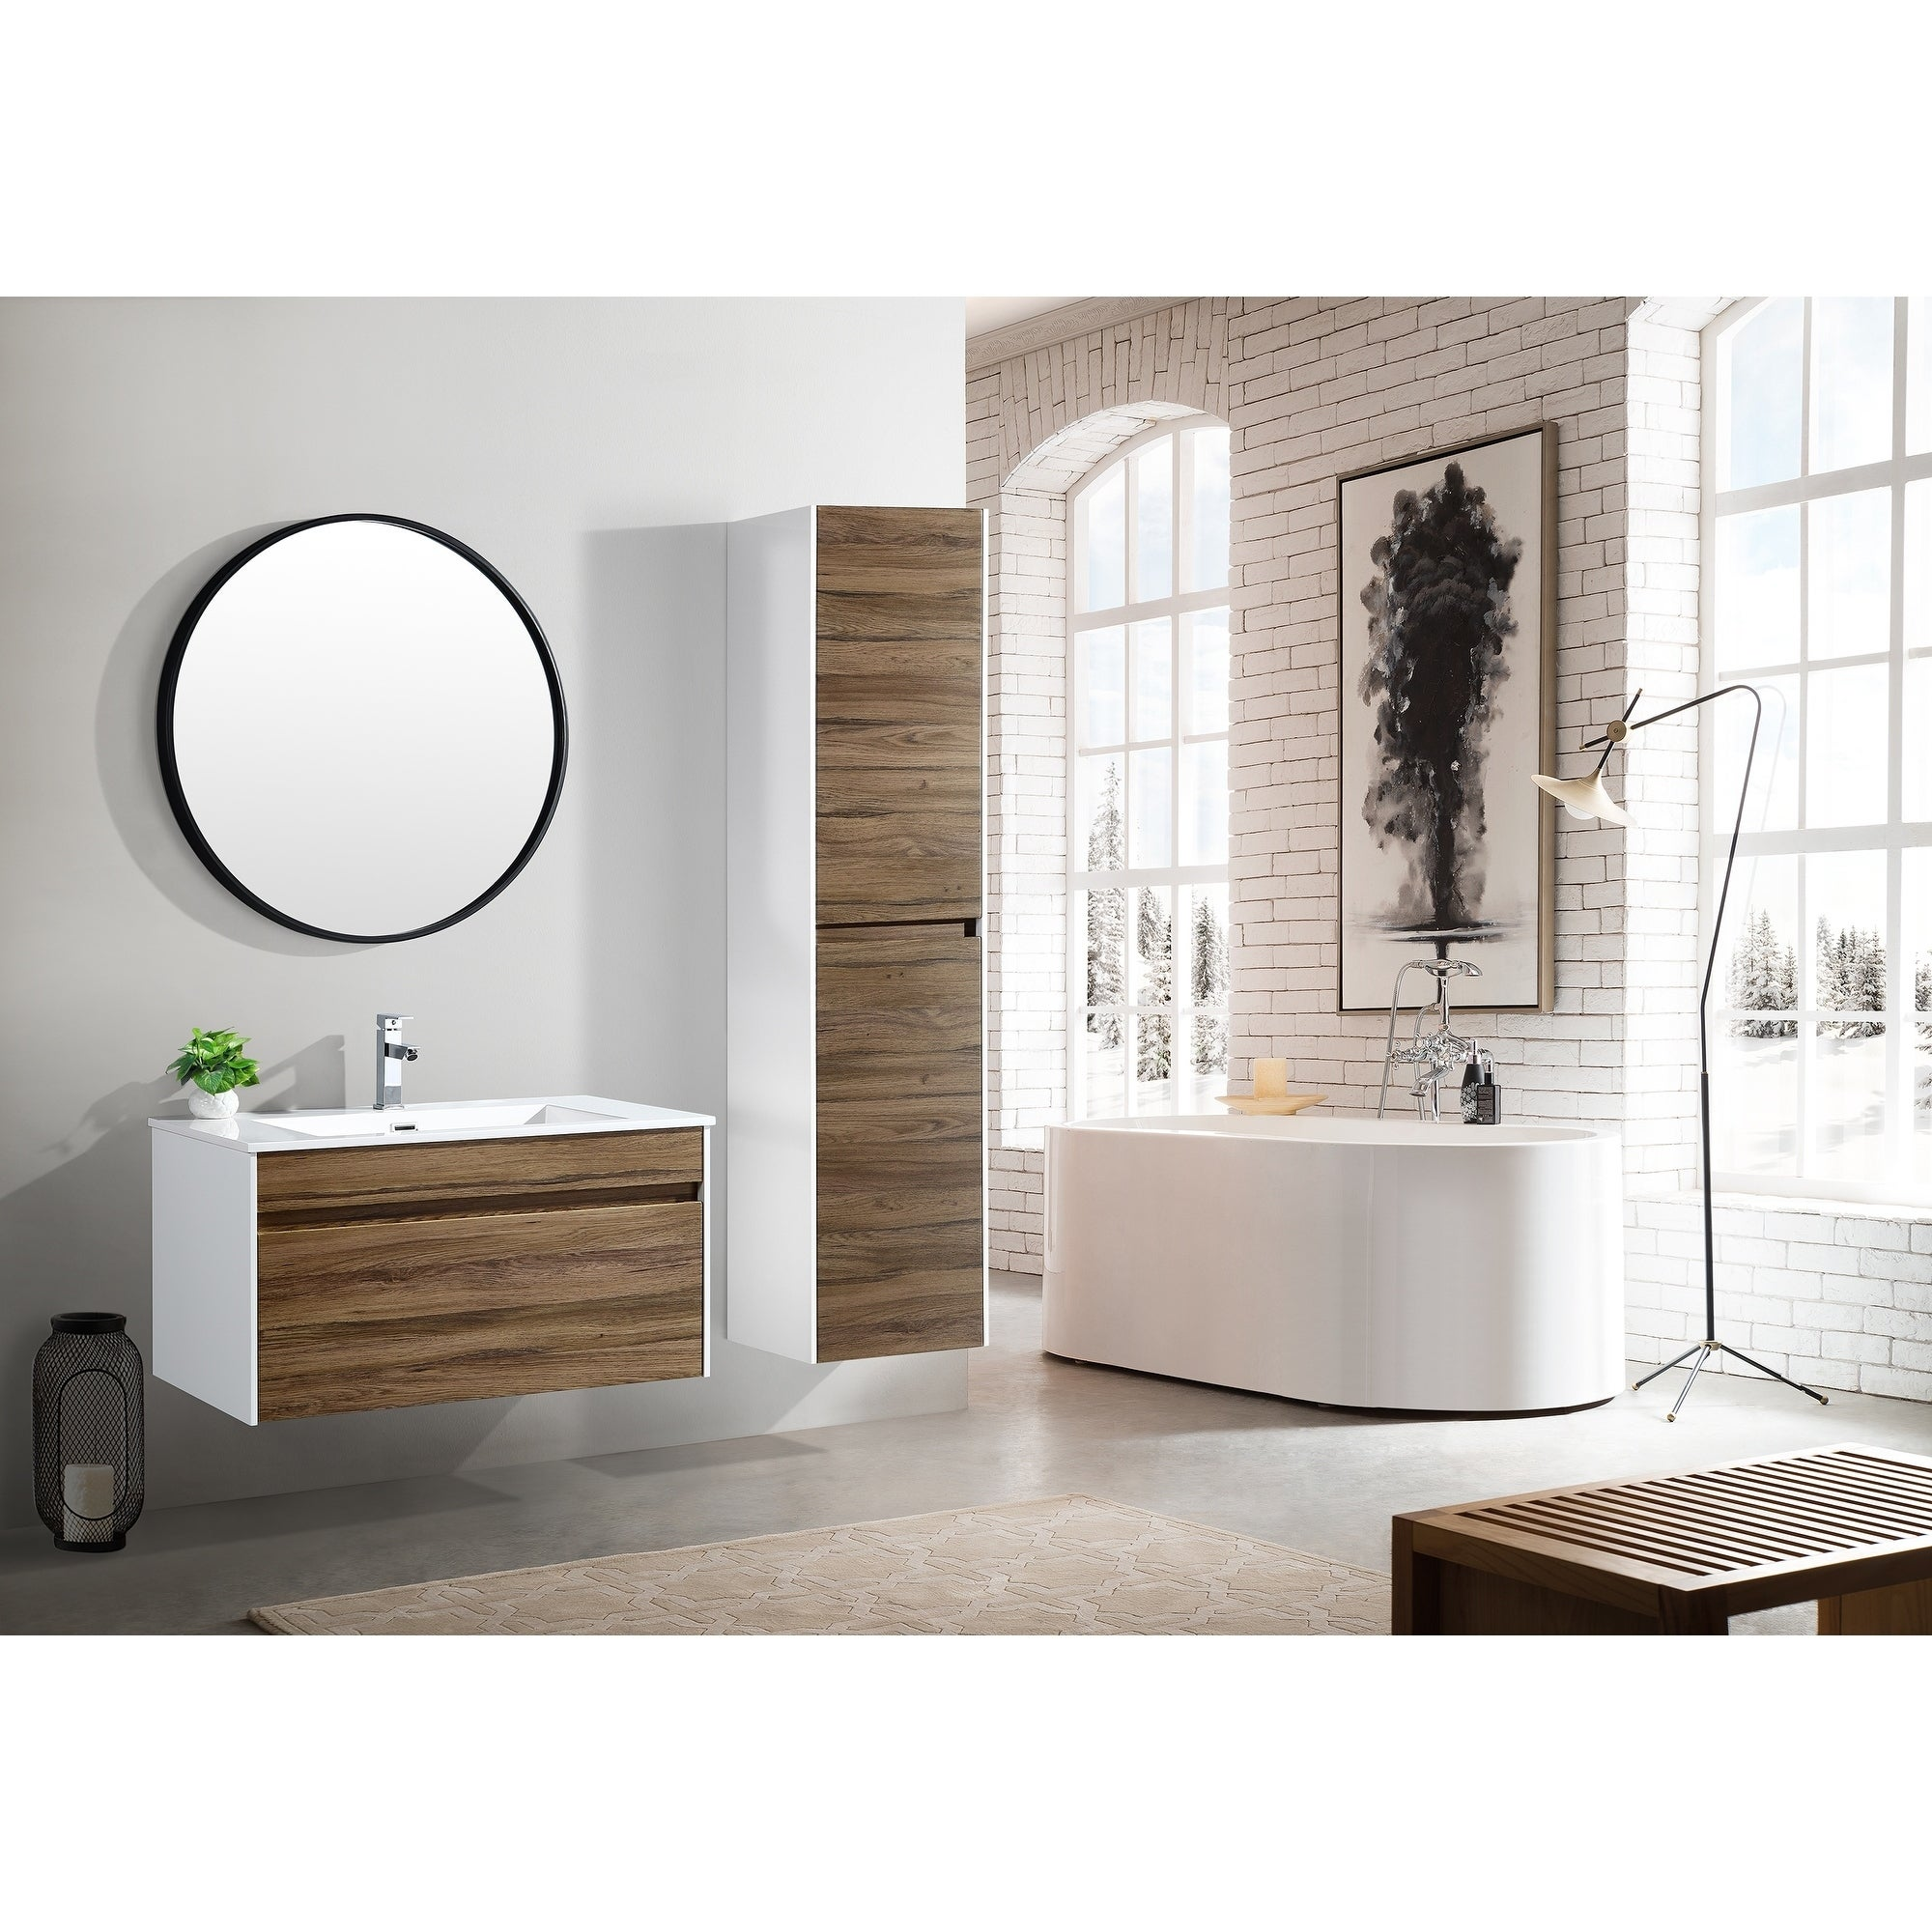 The Ivy Collection 36 Inch Floating Modern Bathroom Vanity Overstock 20979052